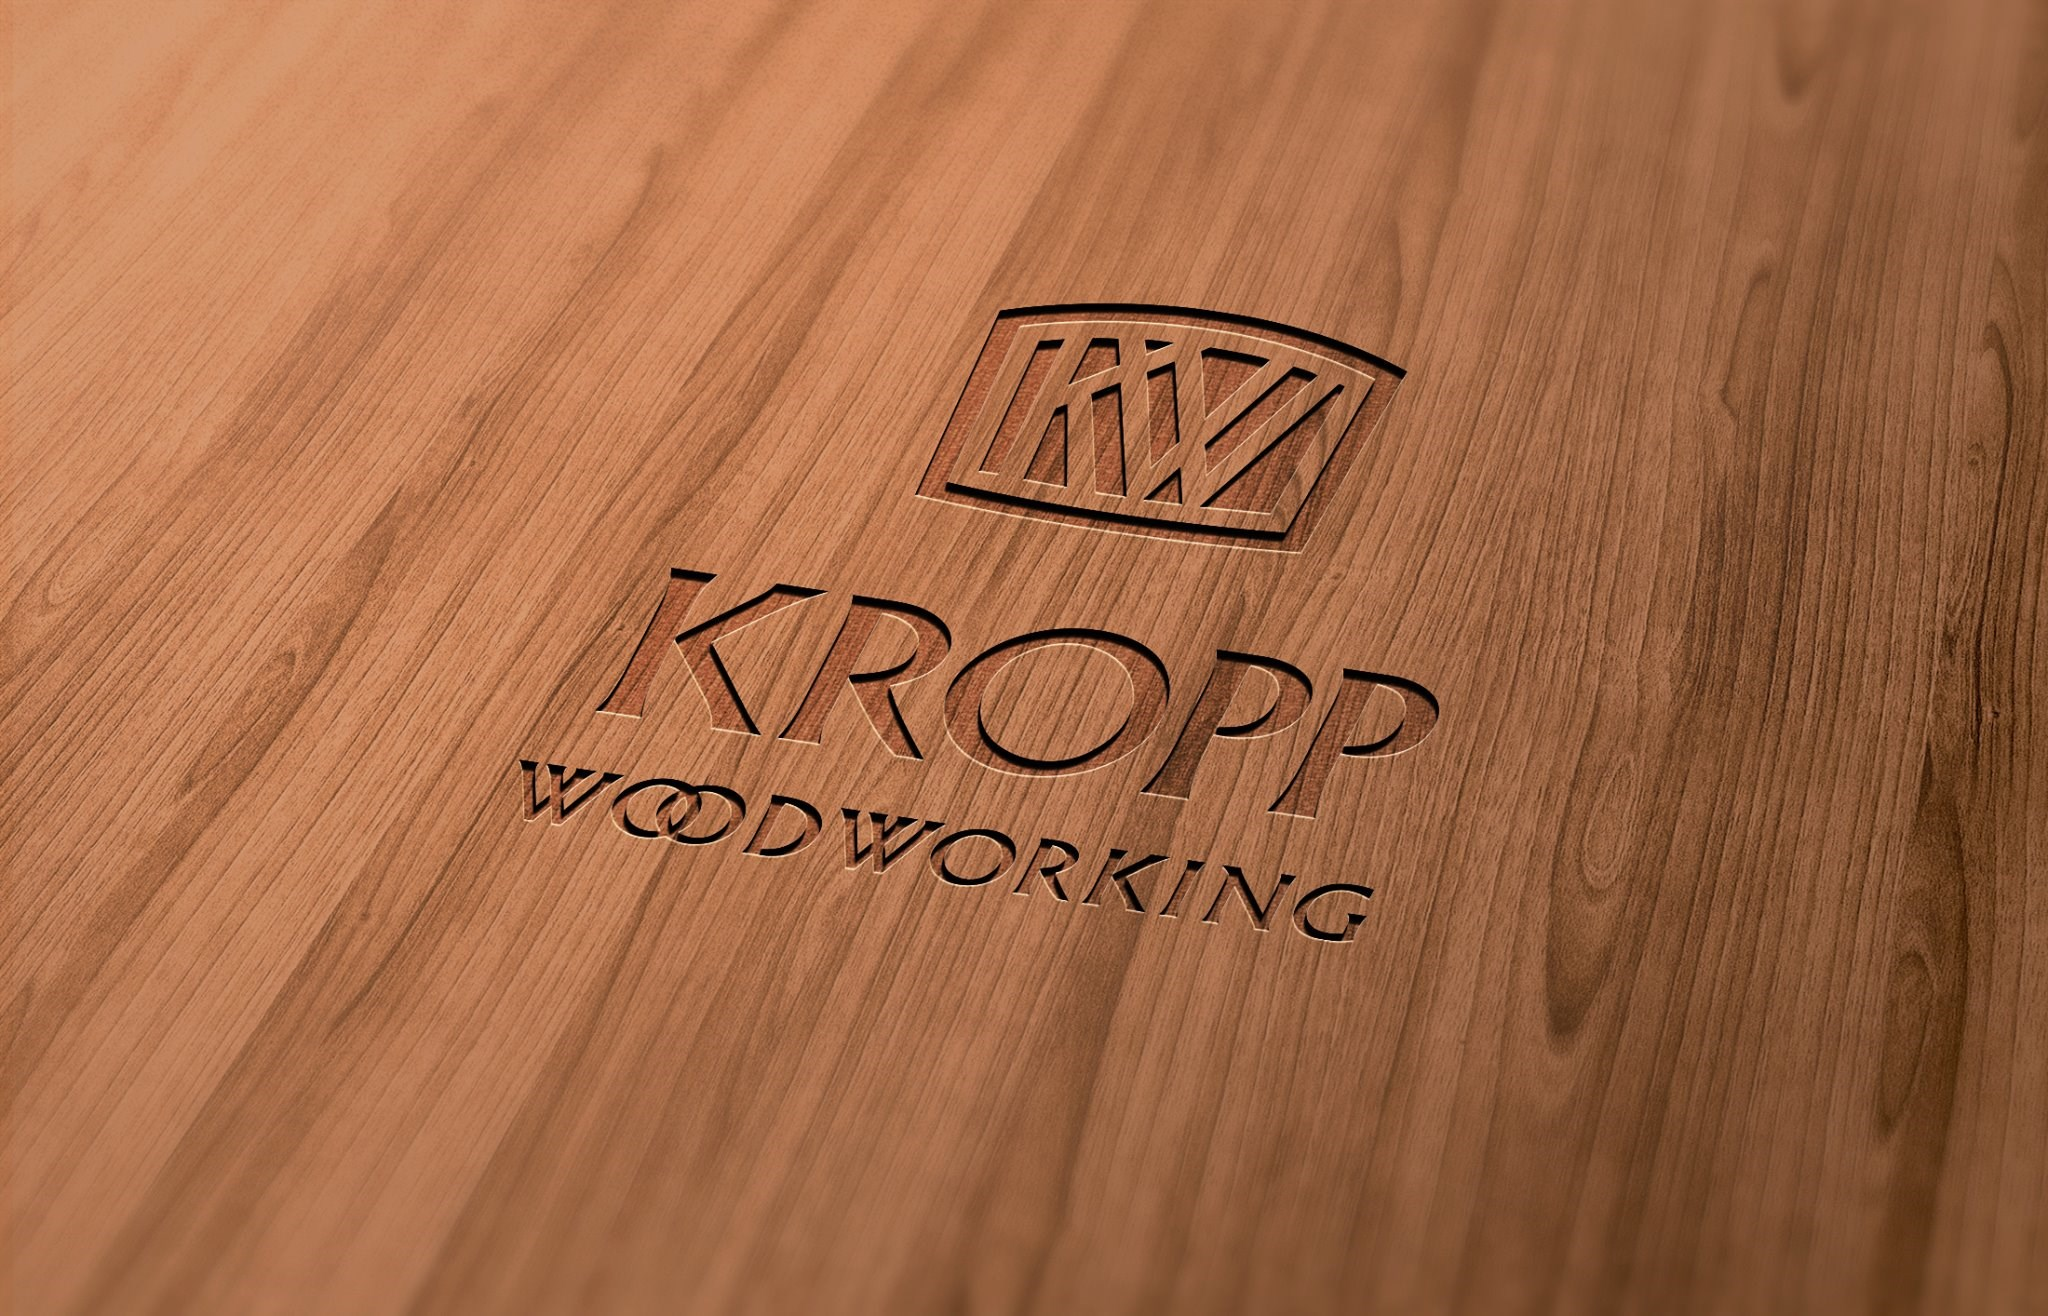 Kropp Woodworking Engrain Wood Countertops Reviews Mount Clemens Mi Angi Angie S List